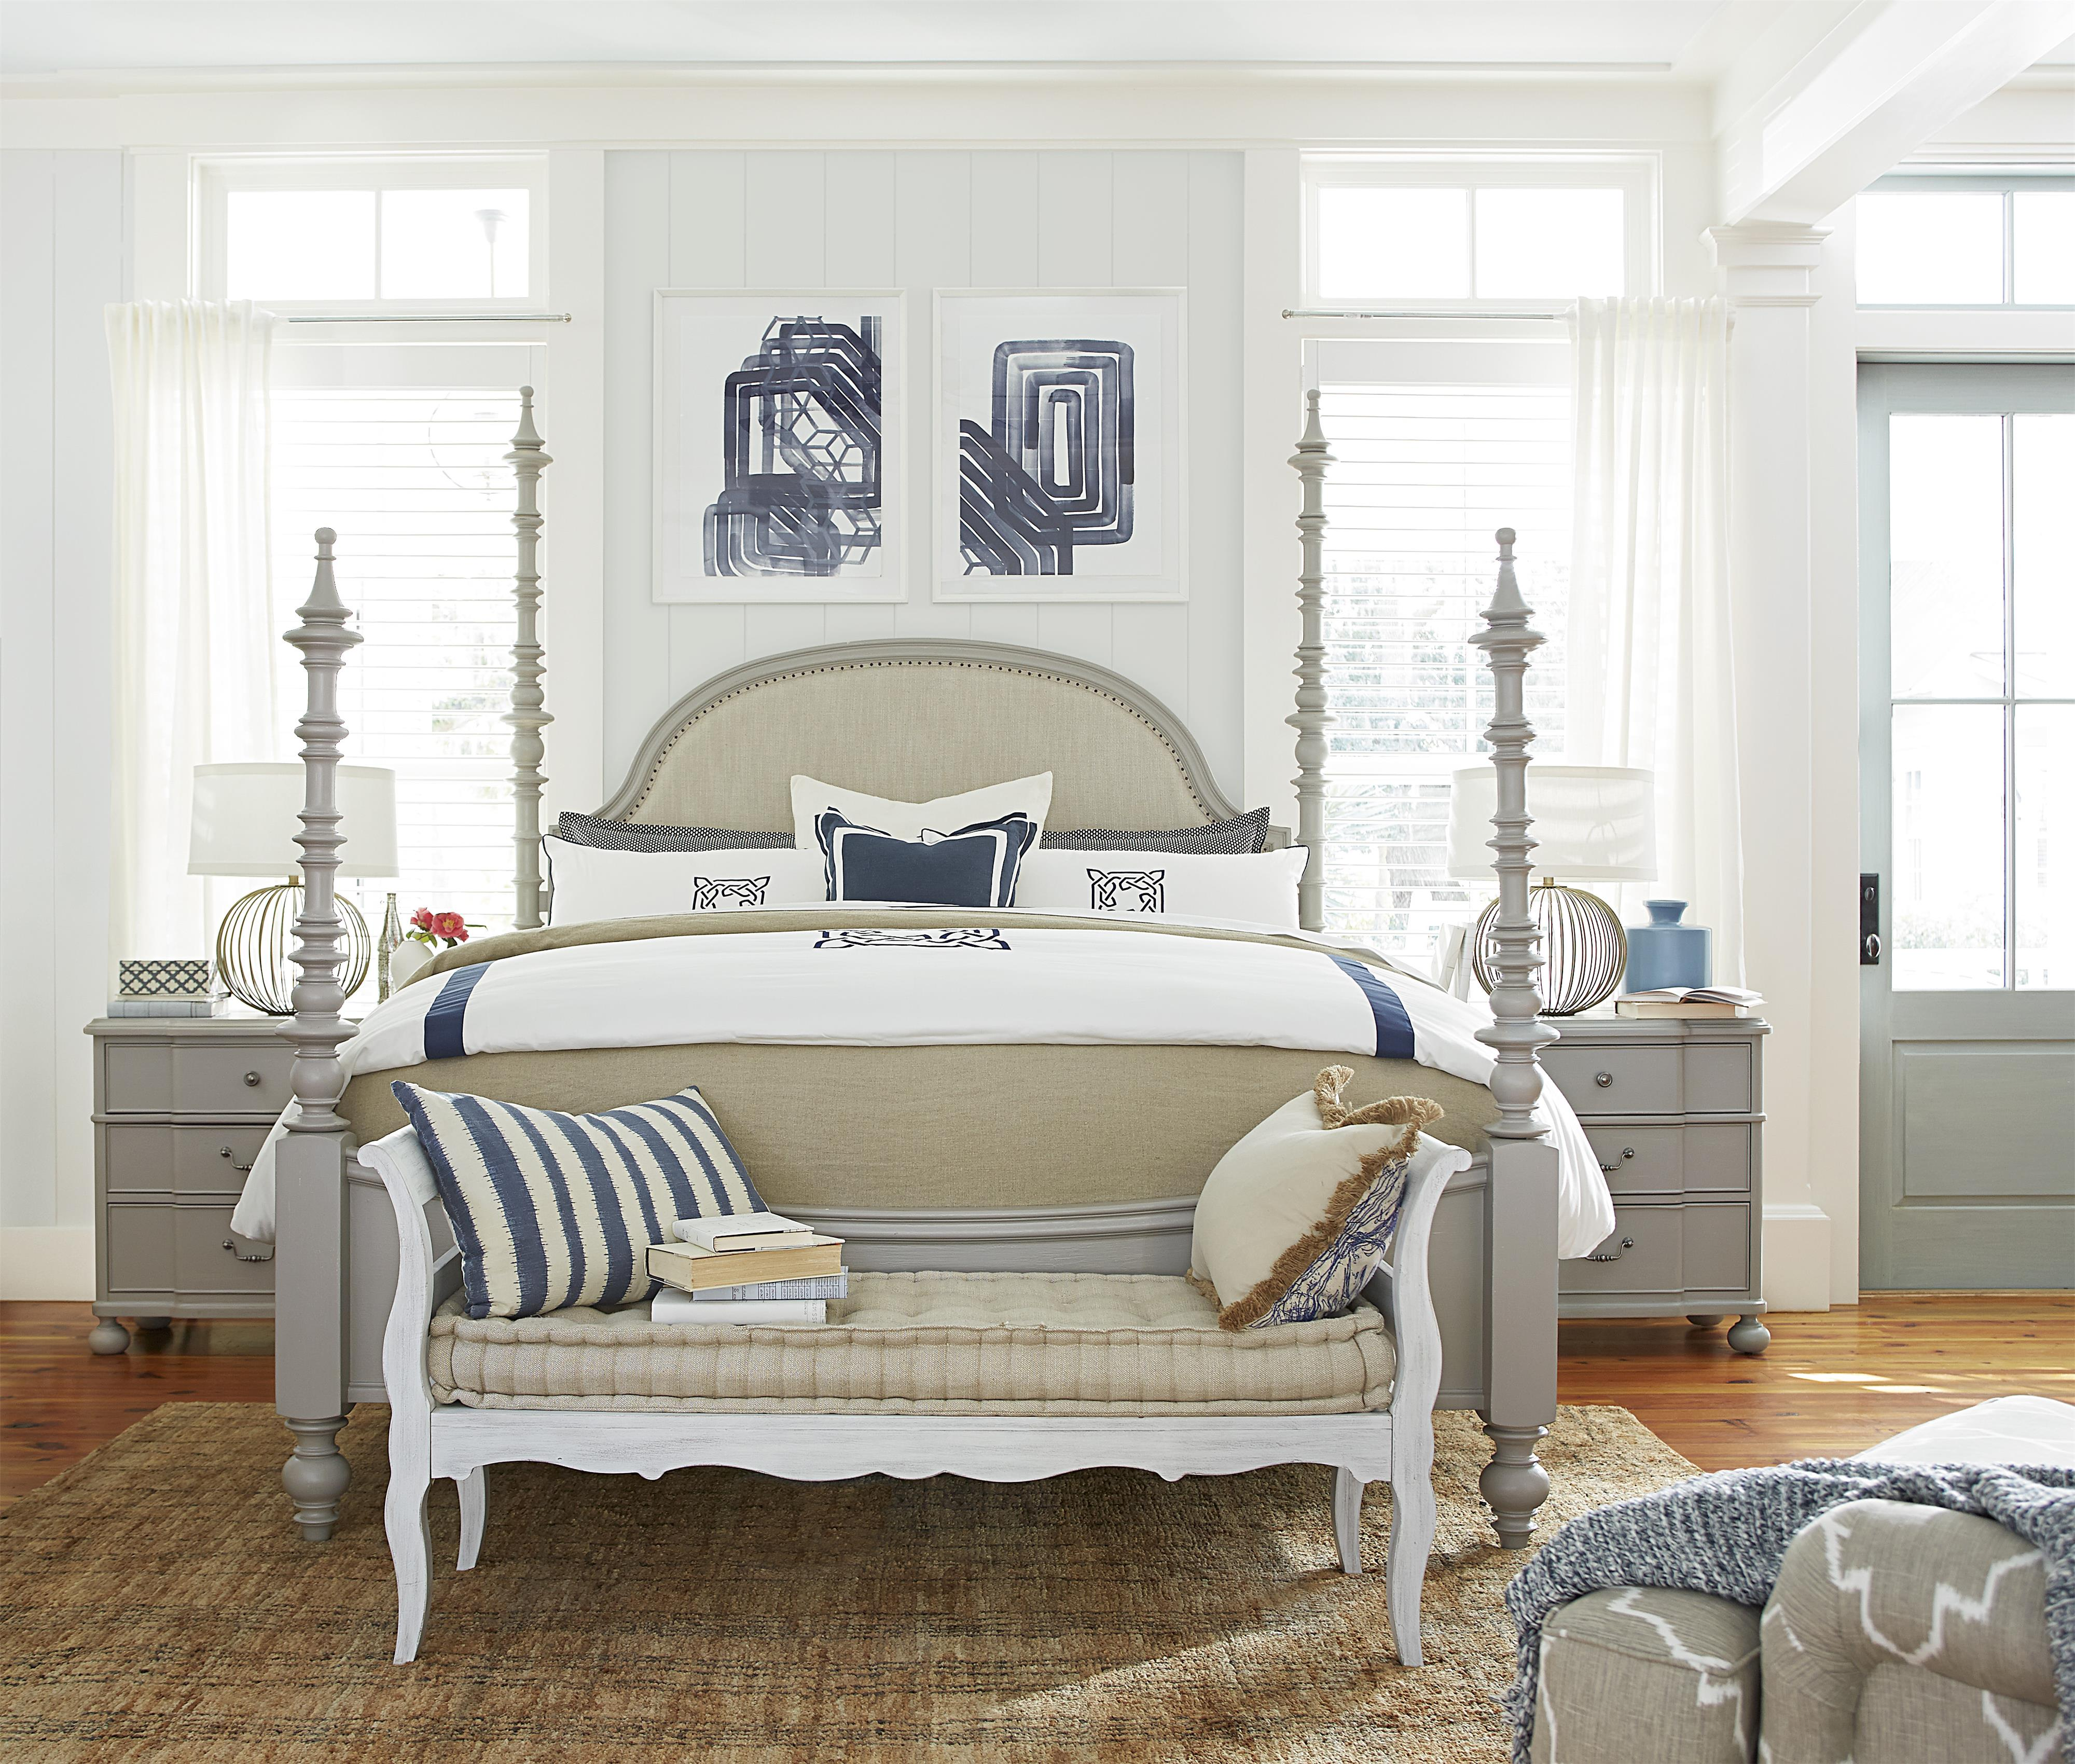 Paula Deen by Universal Dogwood King Bedroom Group - Item Number: 599 K Bedroom Group 1